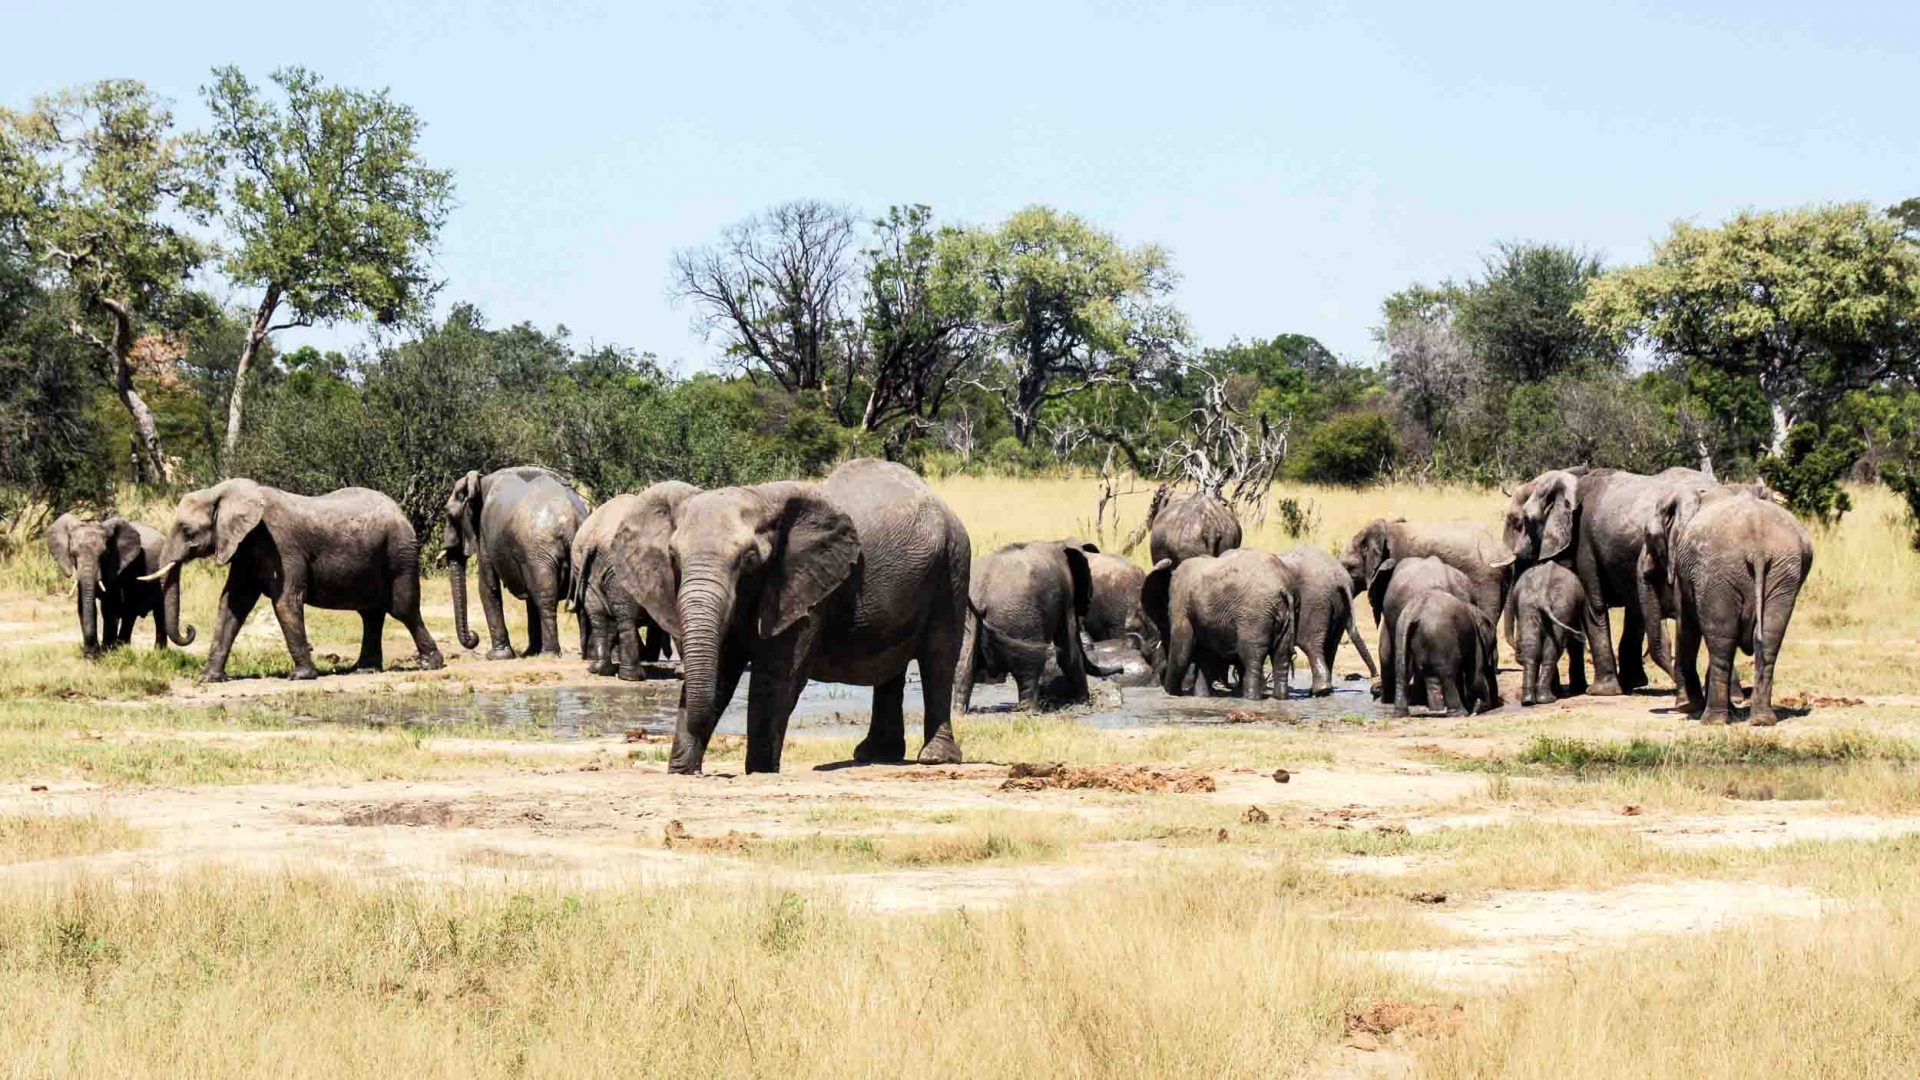 With Mugabe gone, is 2018 the year for Zimbabwe's tourism revival?